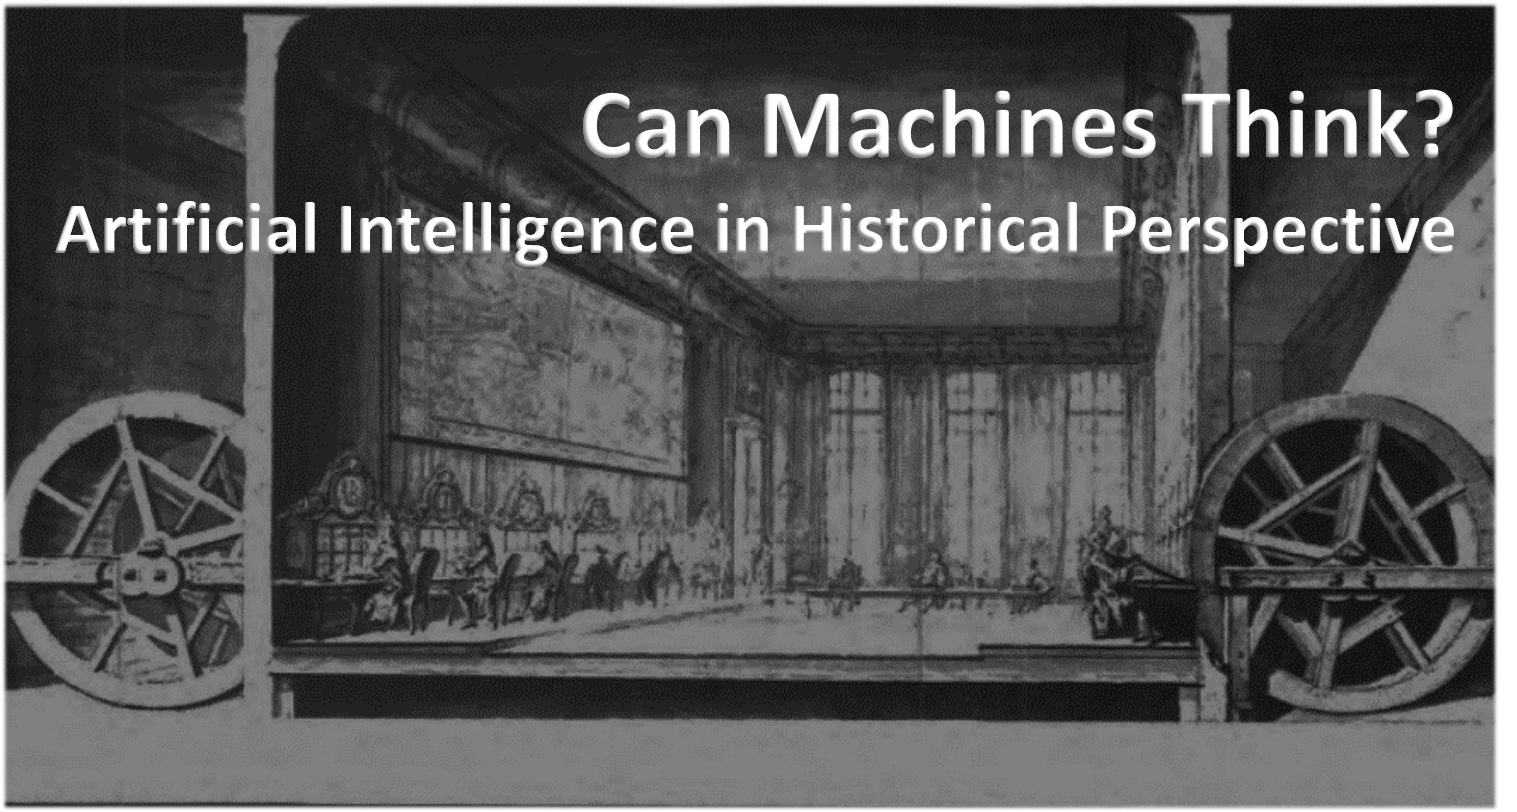 can-machines-think-image.png